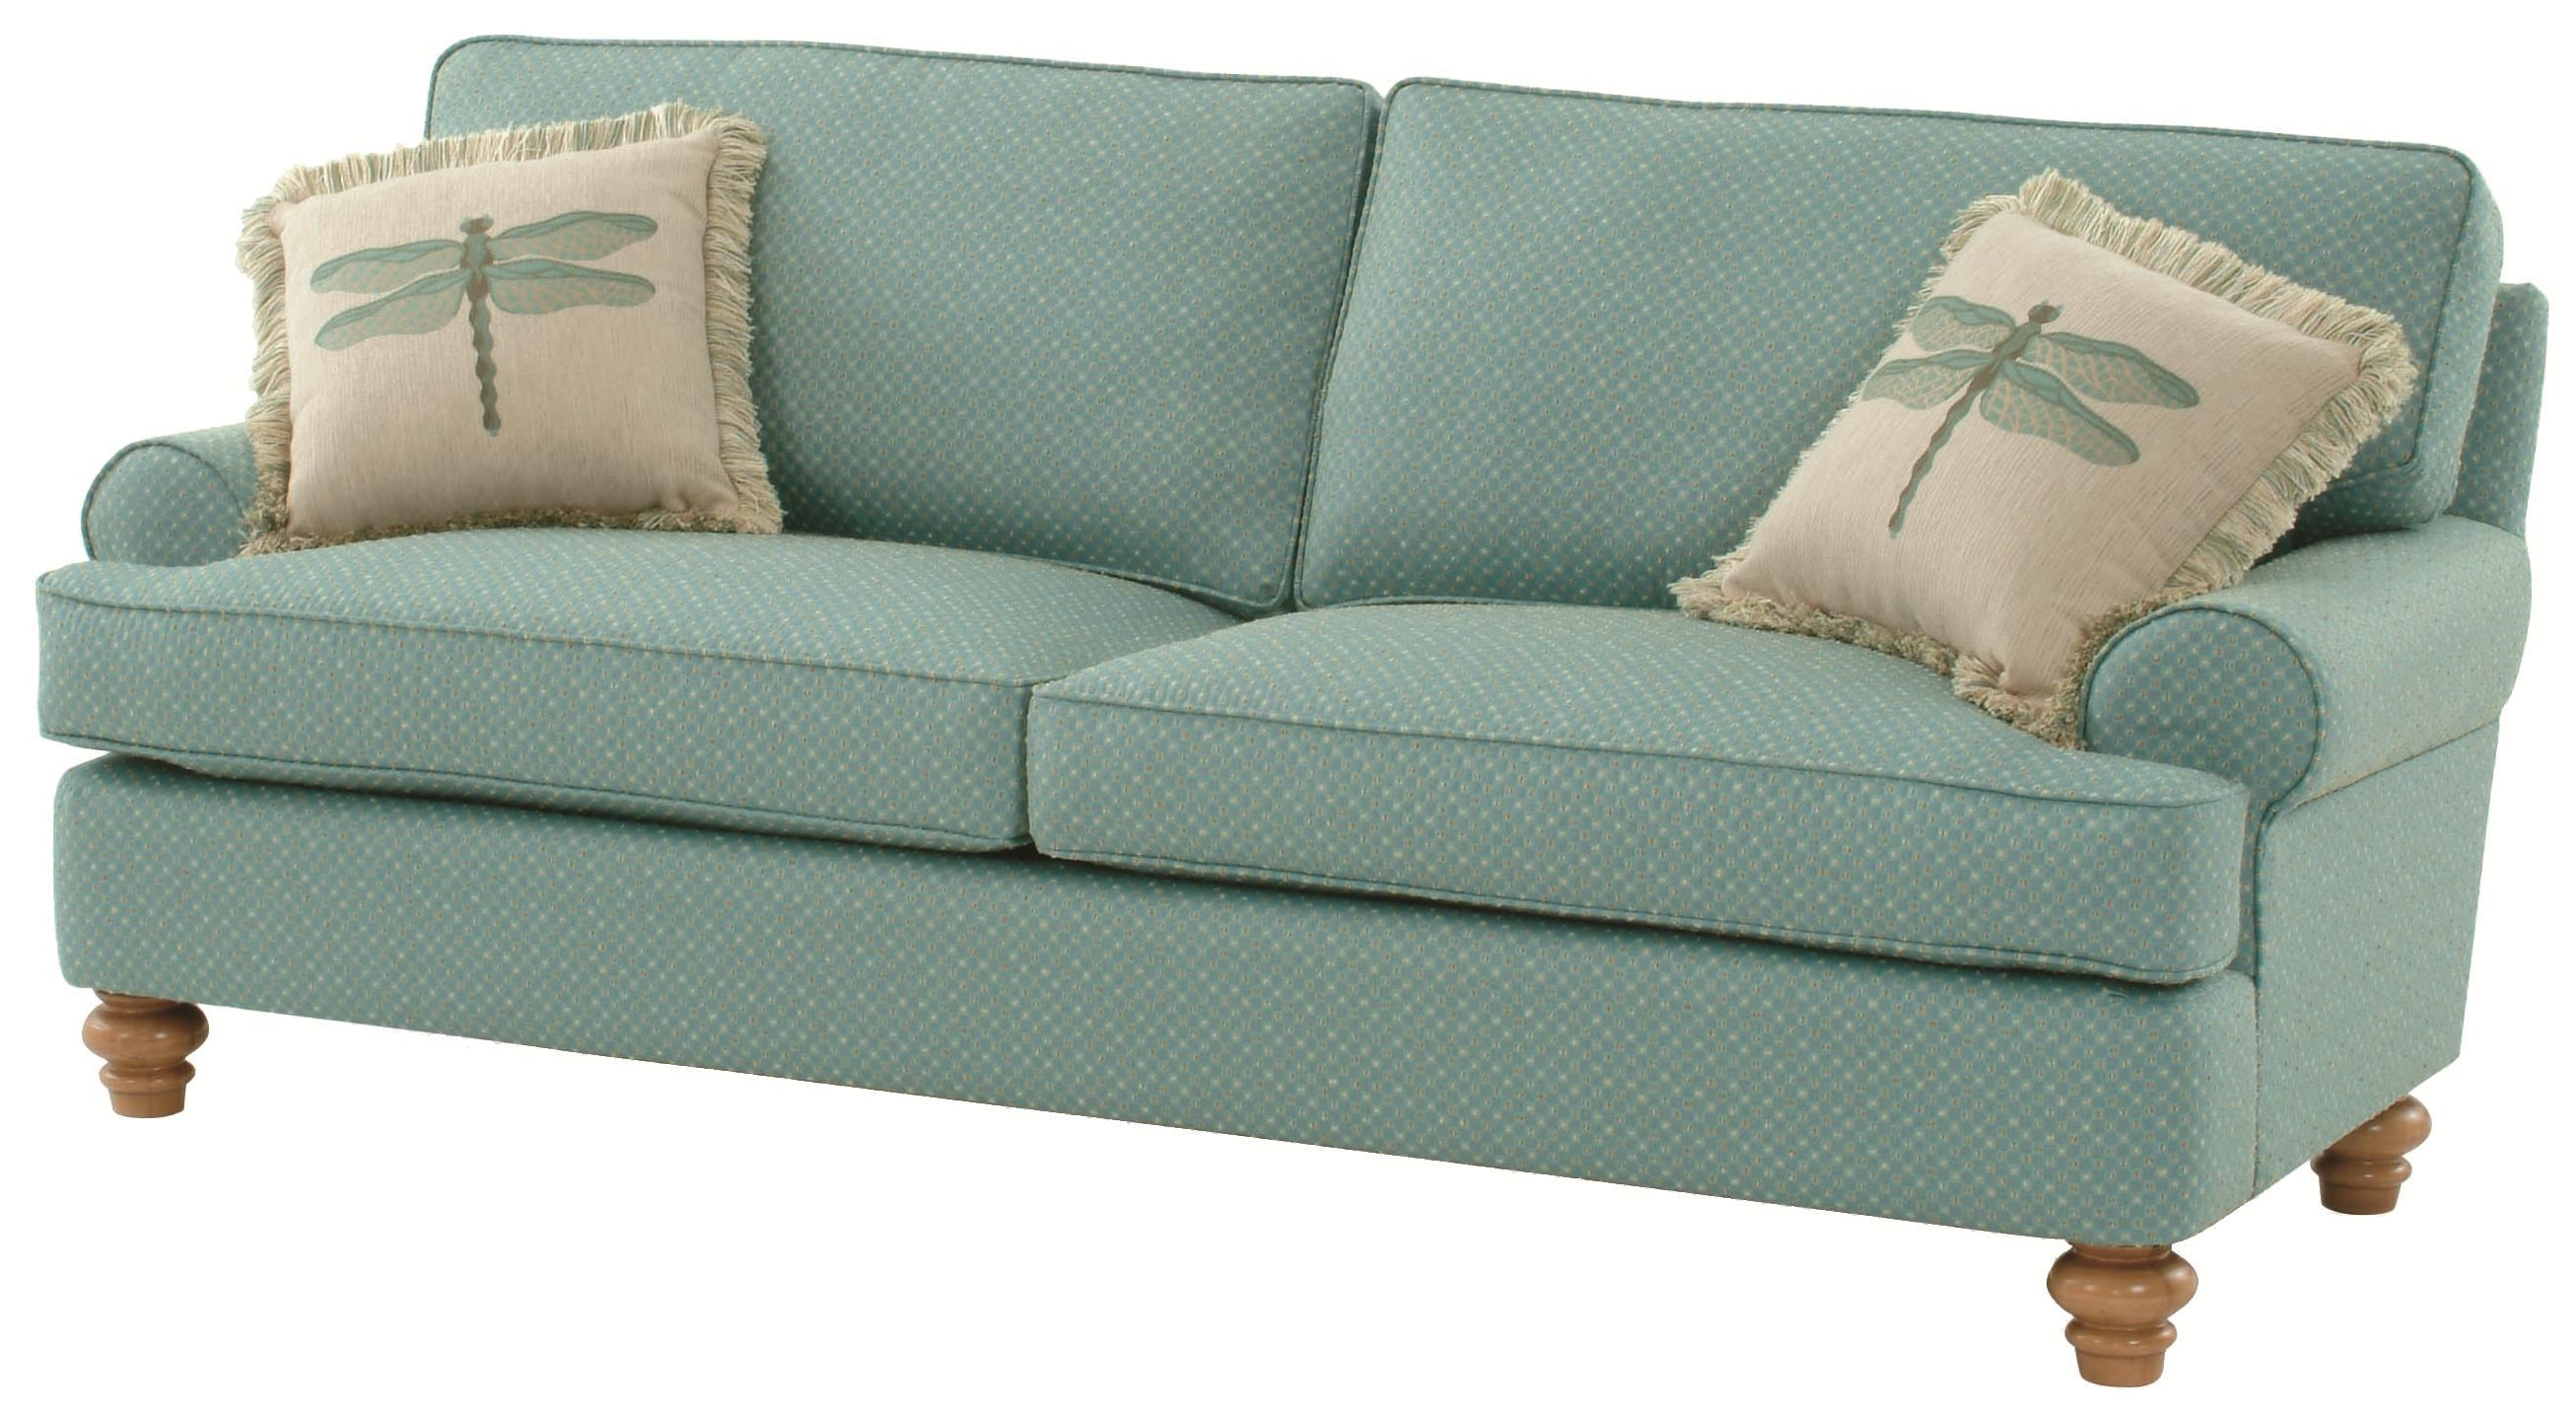 Braxton Culler Sofas & Accent Sofas Store – Dealer Locator With Regard To Braxton Sofas (View 5 of 20)